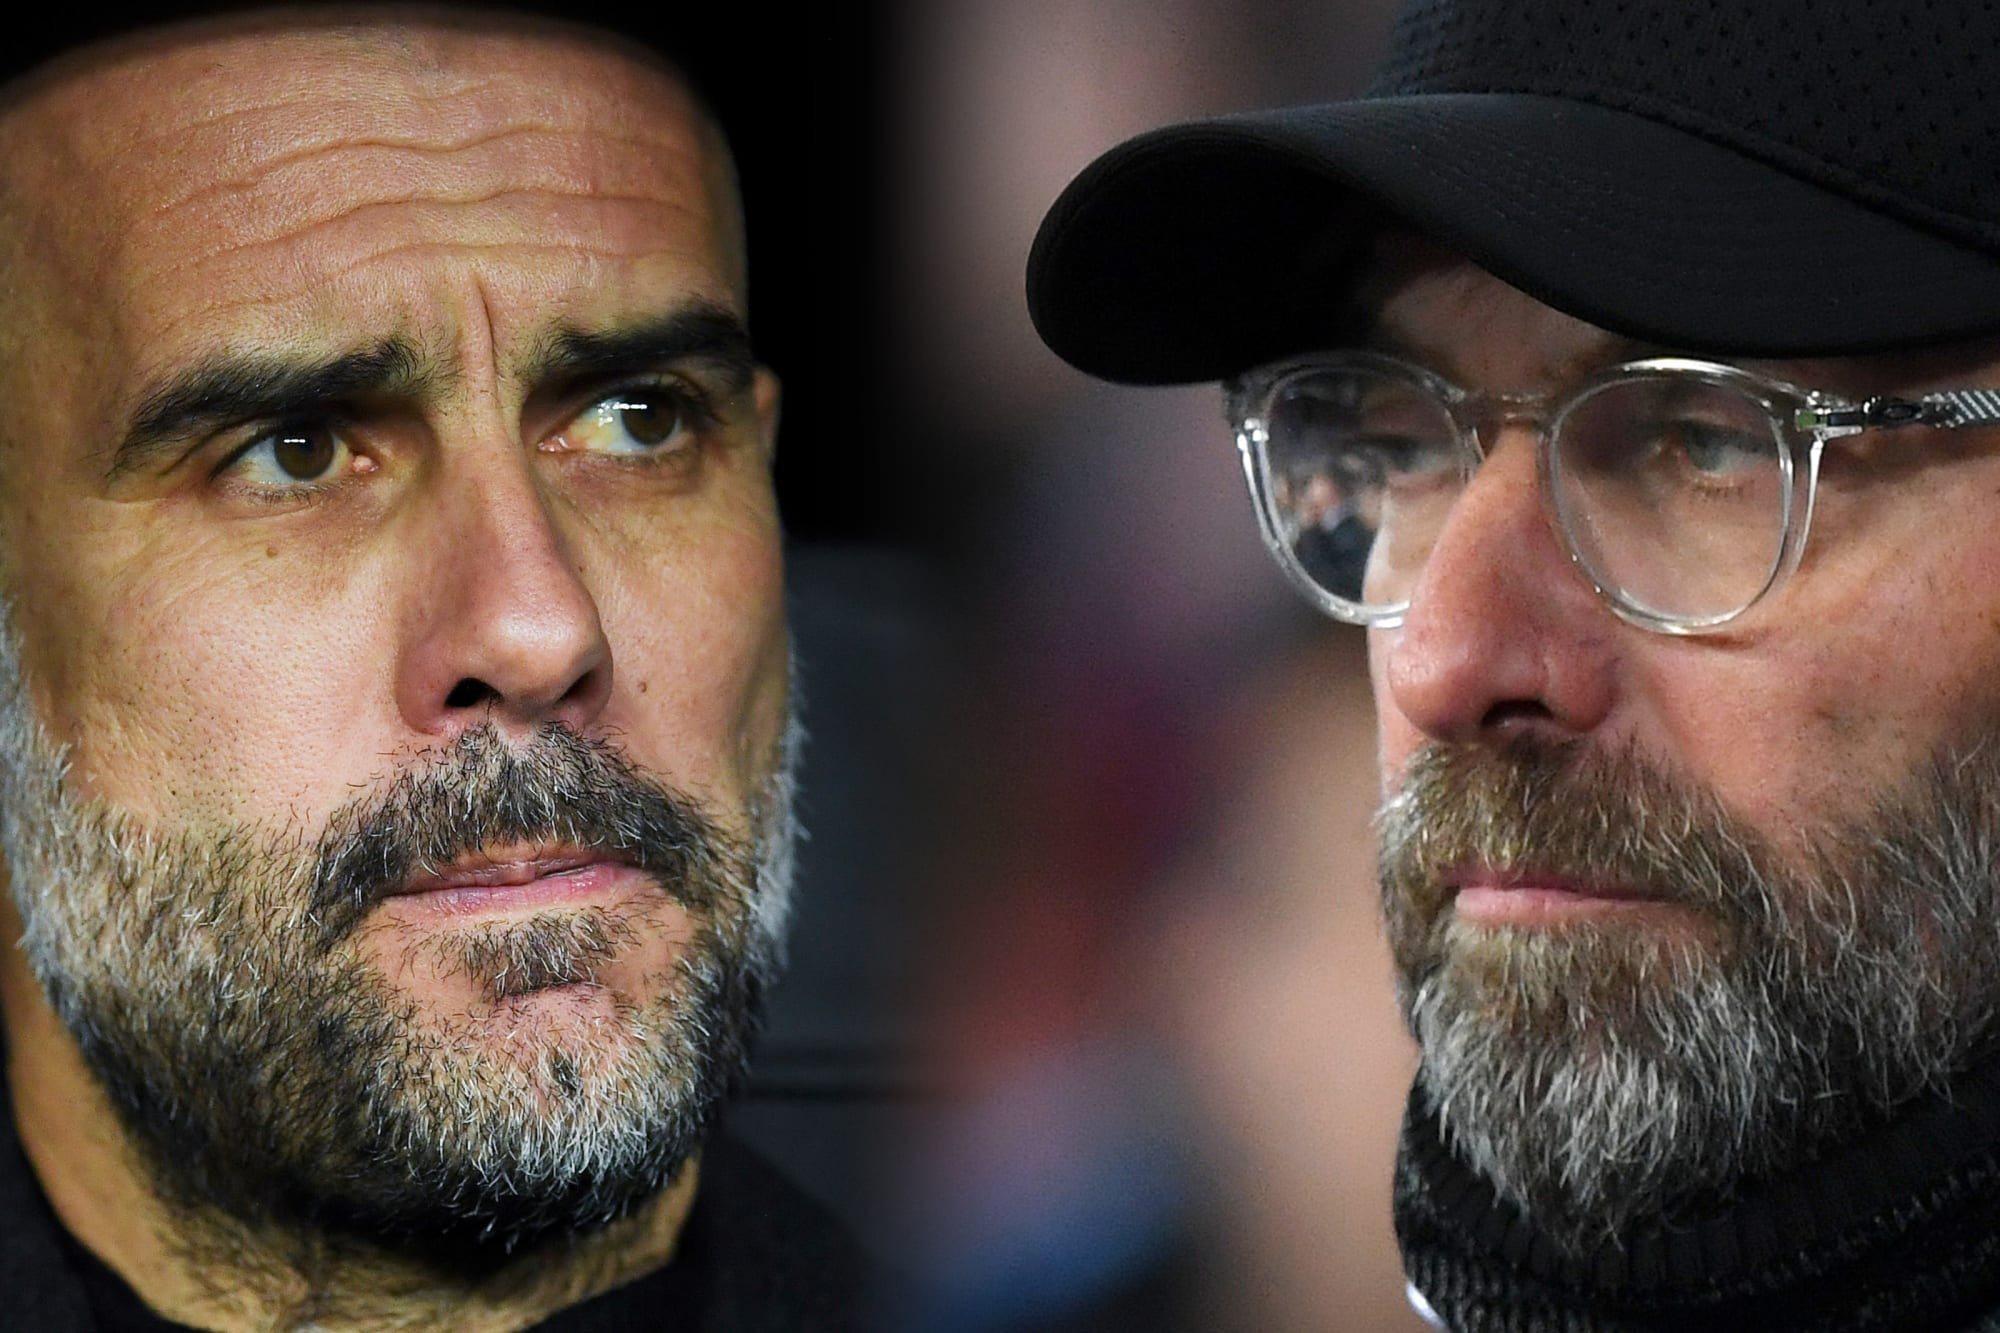 Liverpool face competition with Manchester City to sign world-class midfielder